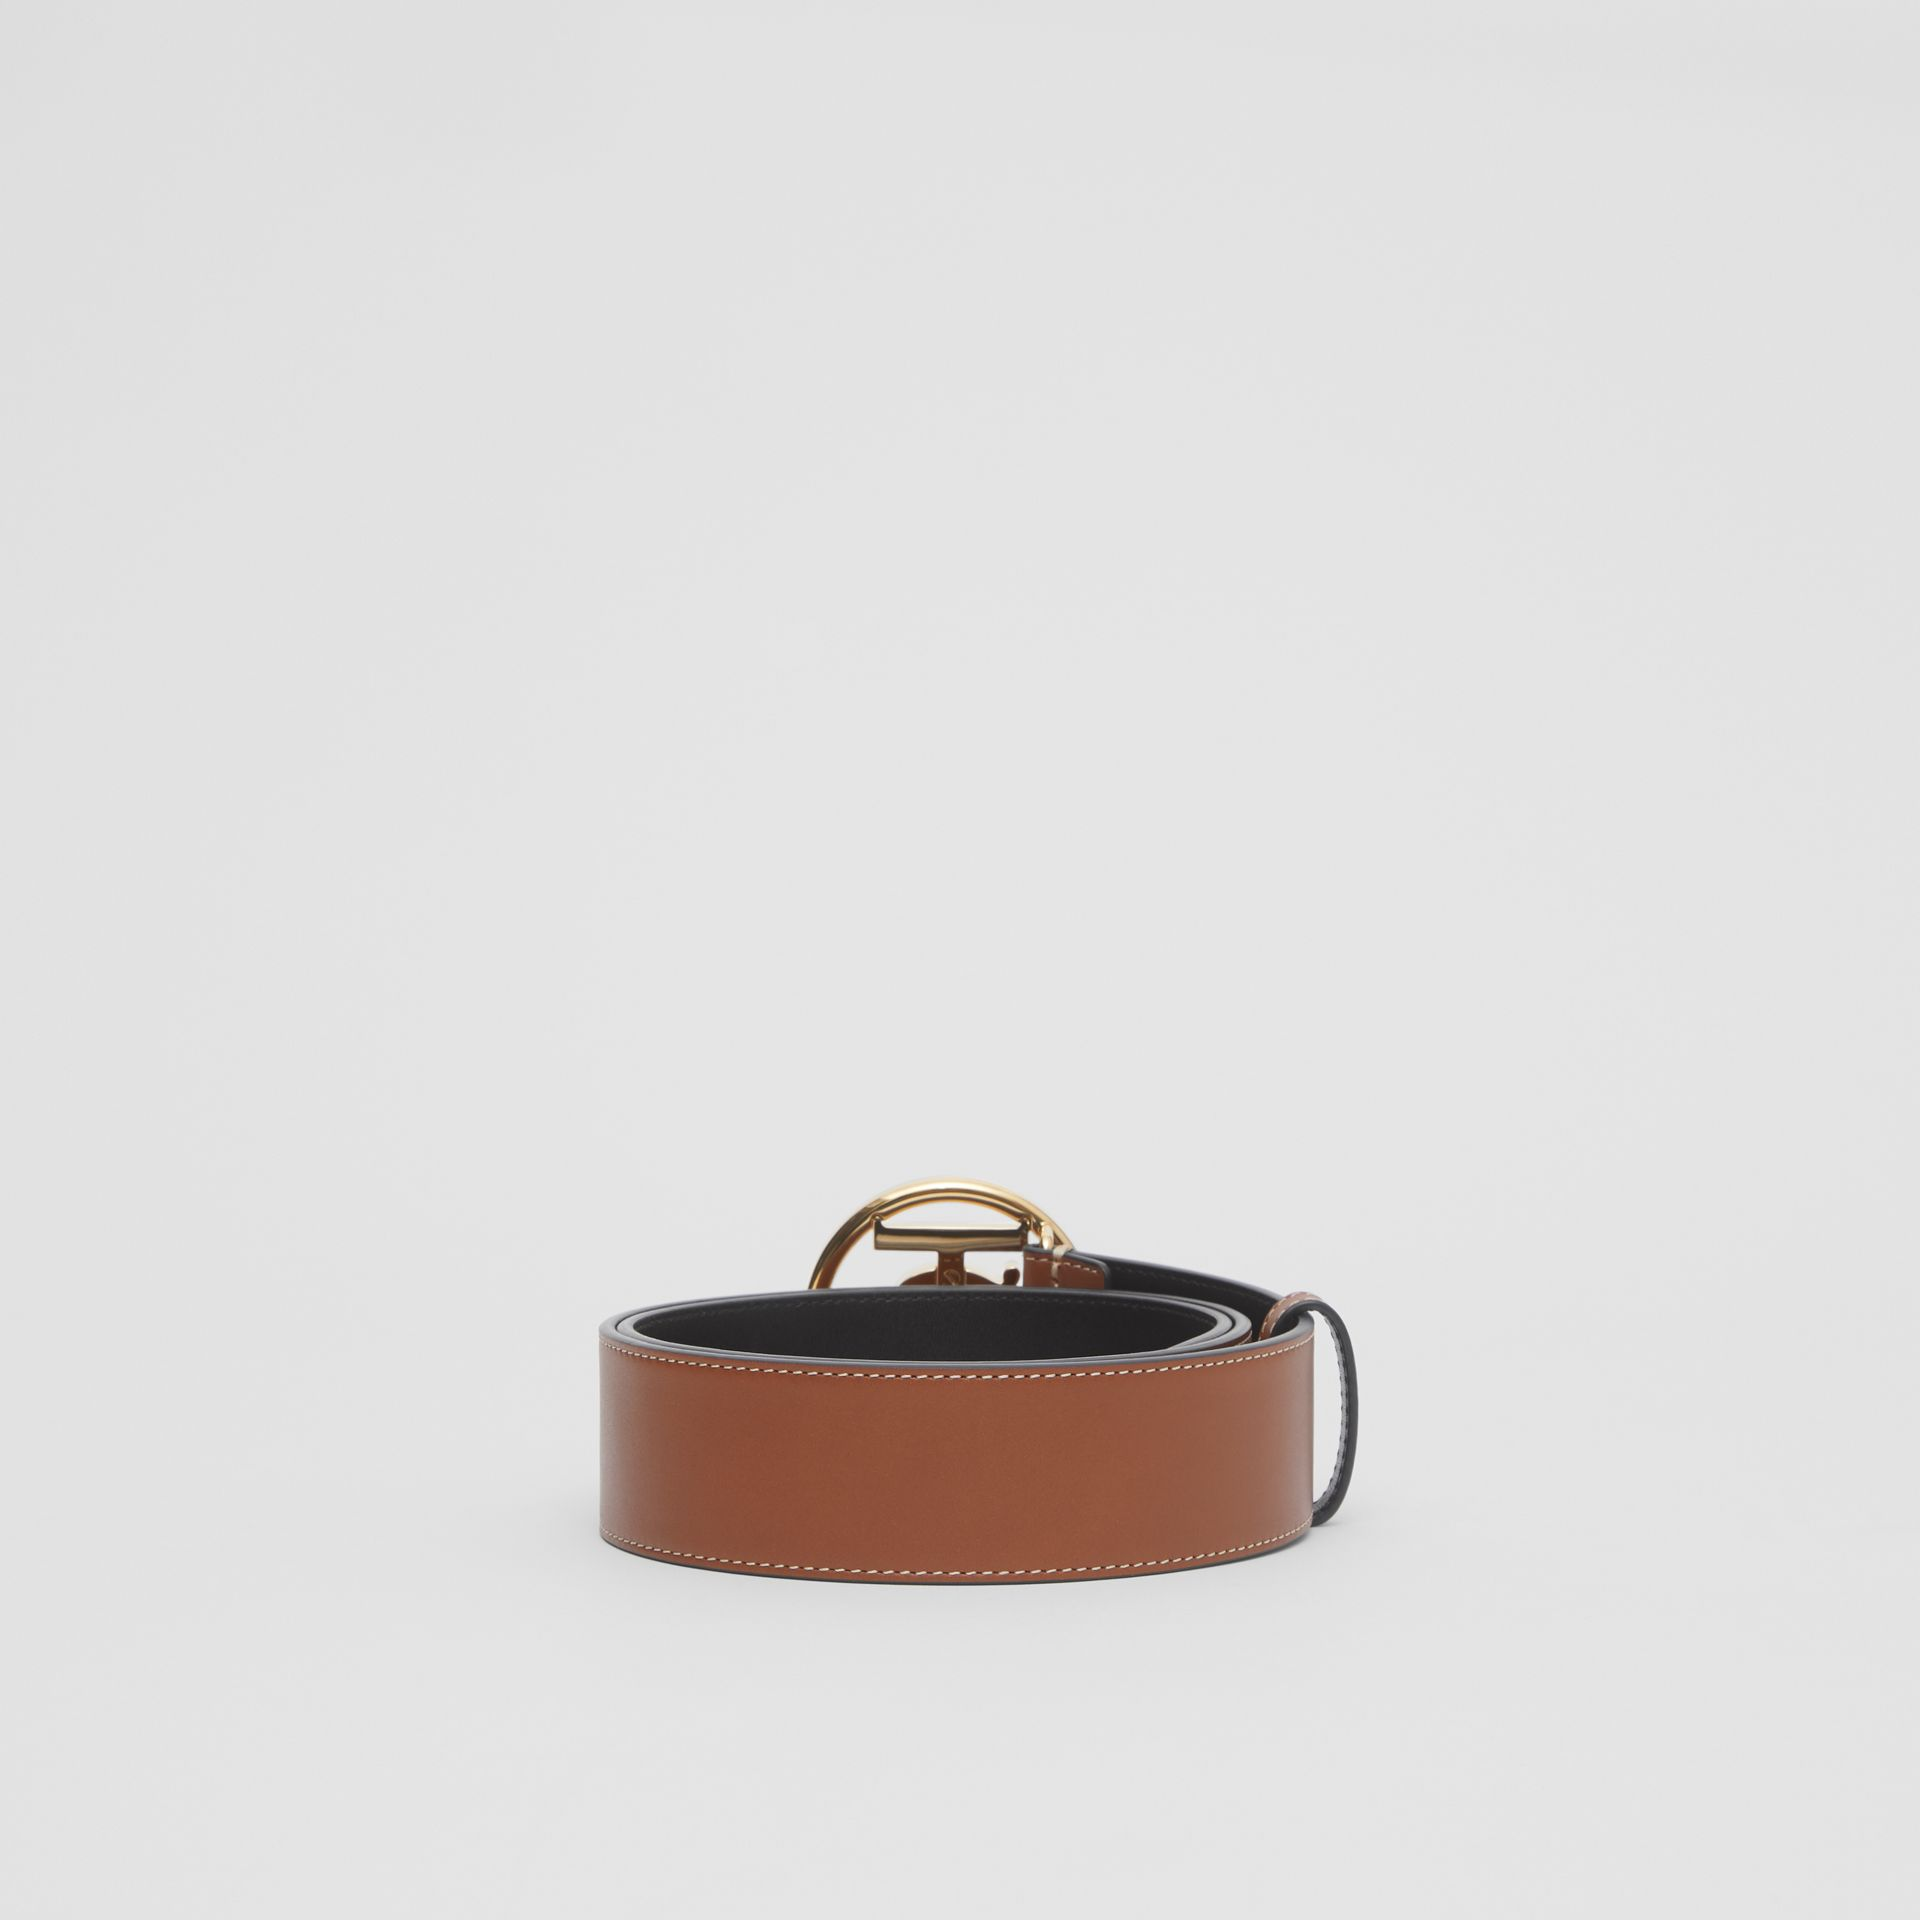 Monogram Motif Topstitched Leather Belt in Tan - Men | Burberry United Kingdom - gallery image 3